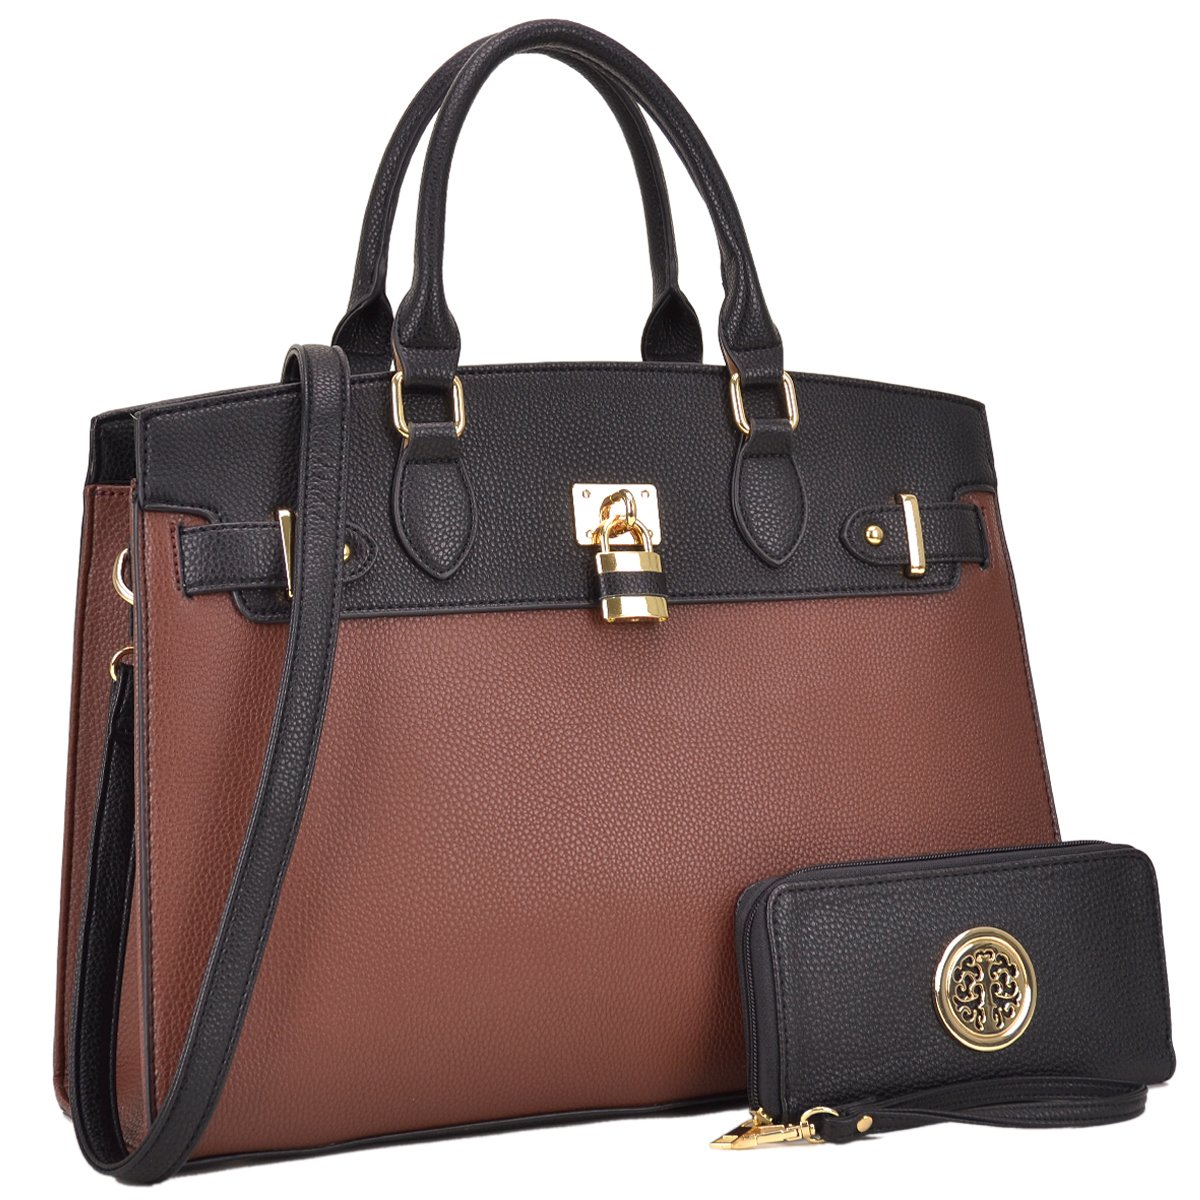 Padlock Two-Tone Satchel with Matching Wallet